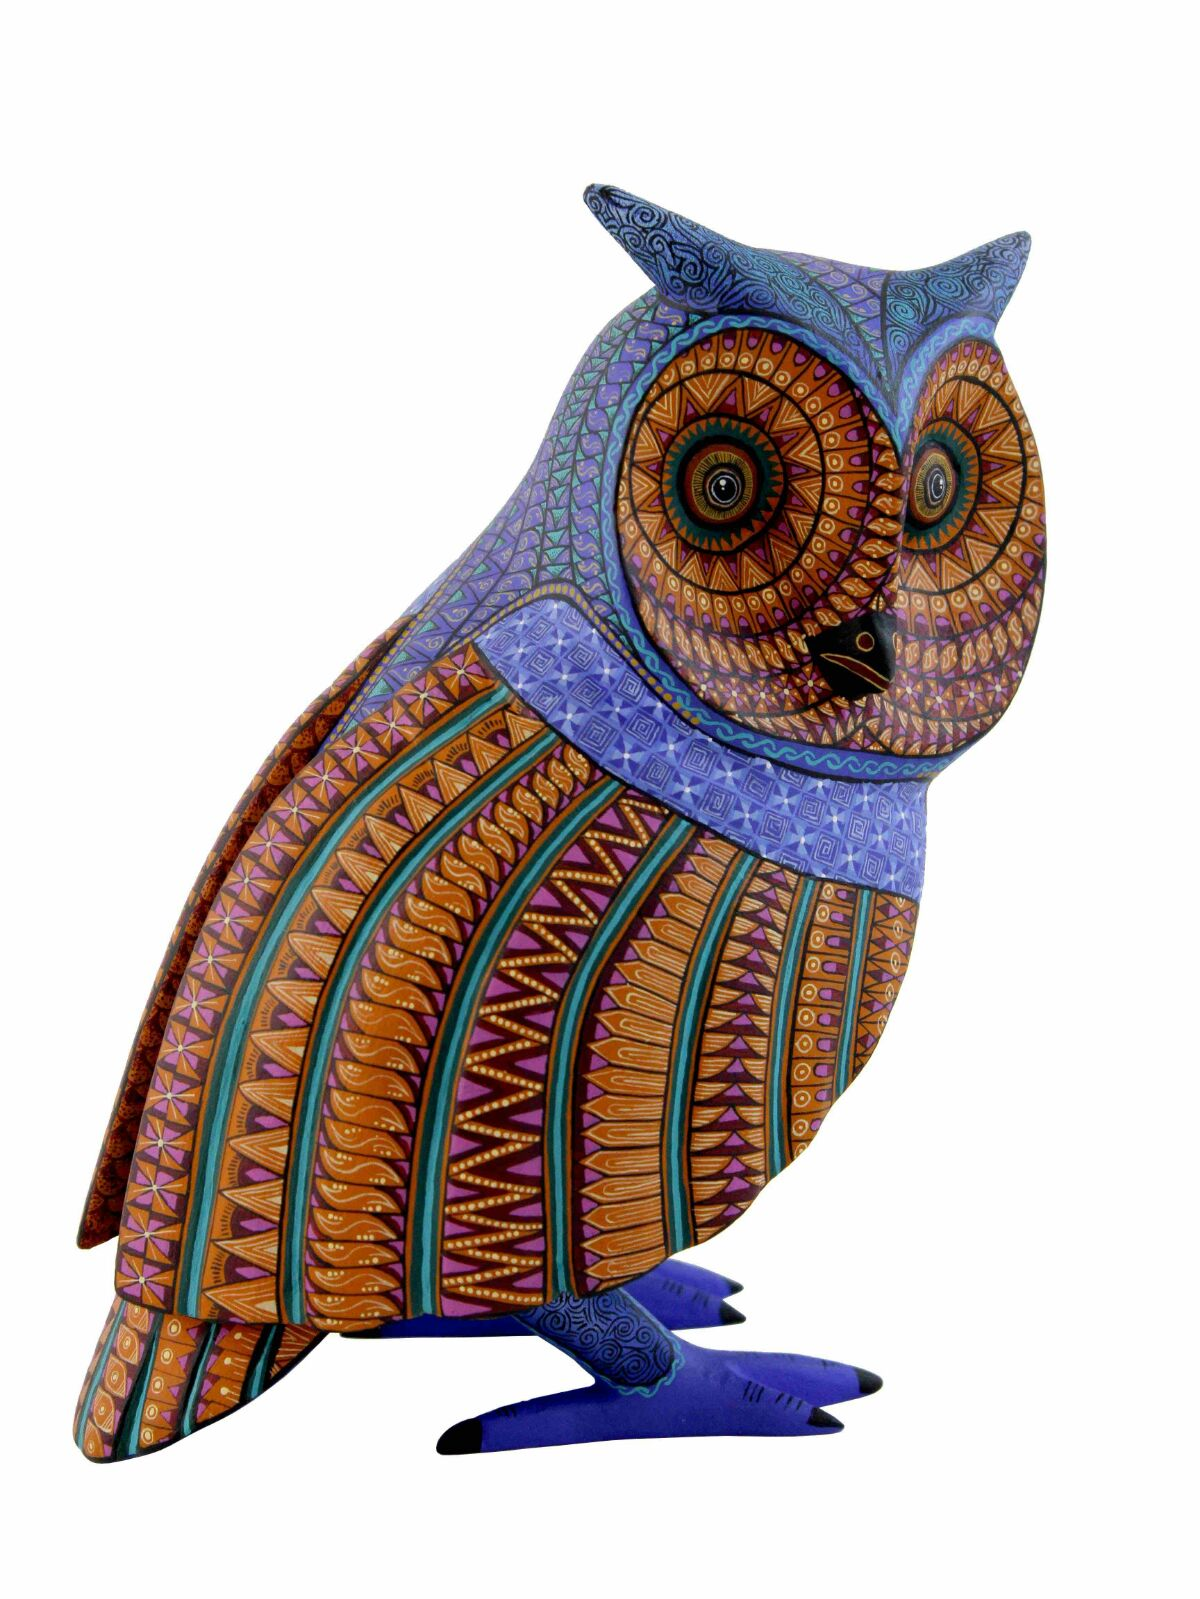 Jacobo & Maria Angeles Original Alebrijes Buho #42, owl